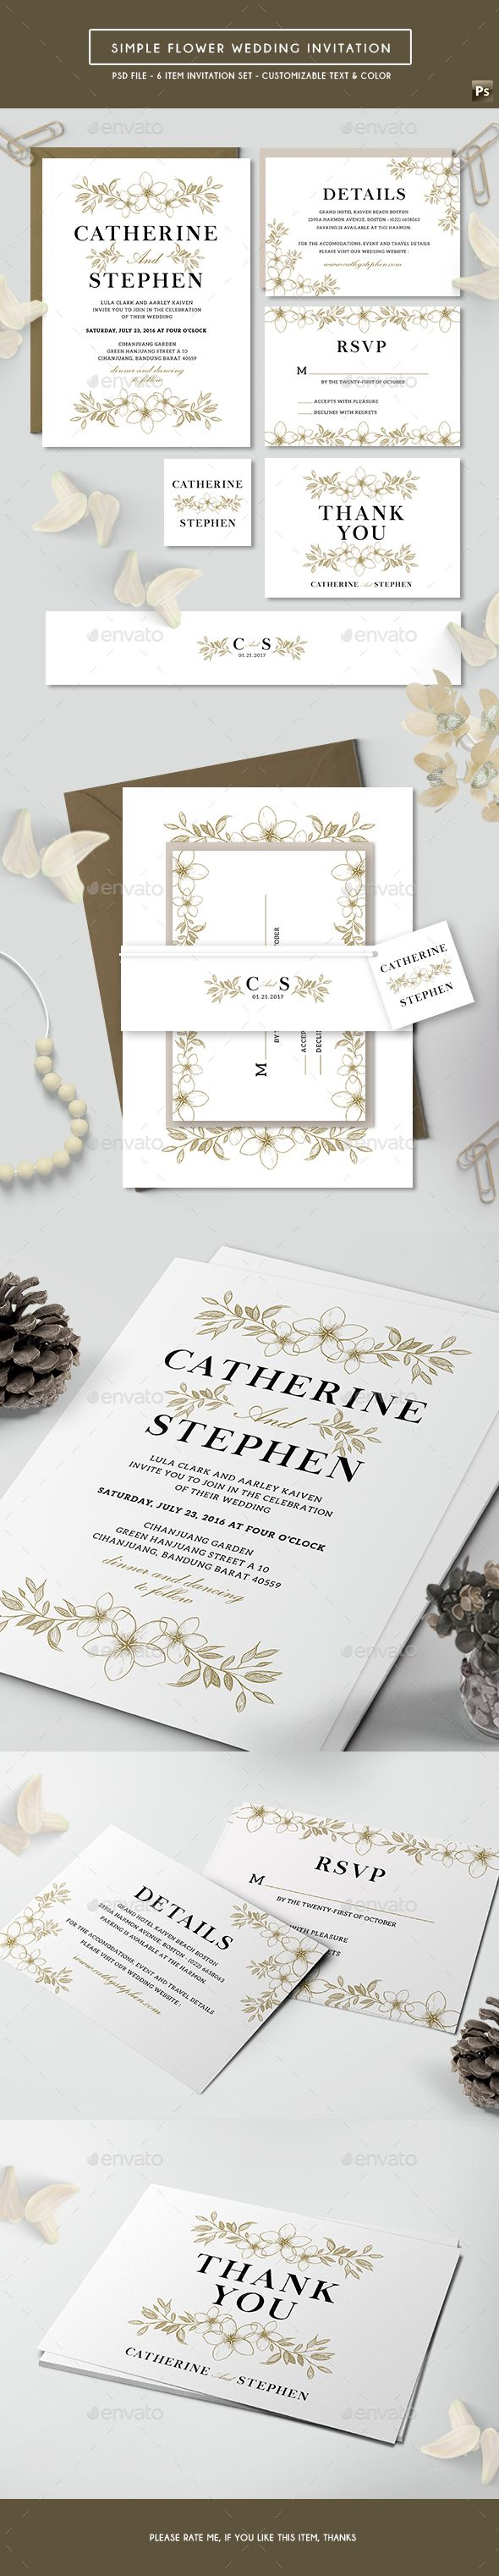 Simple Flower Wedding Invitation | Simple flowers, Template and Psd ...